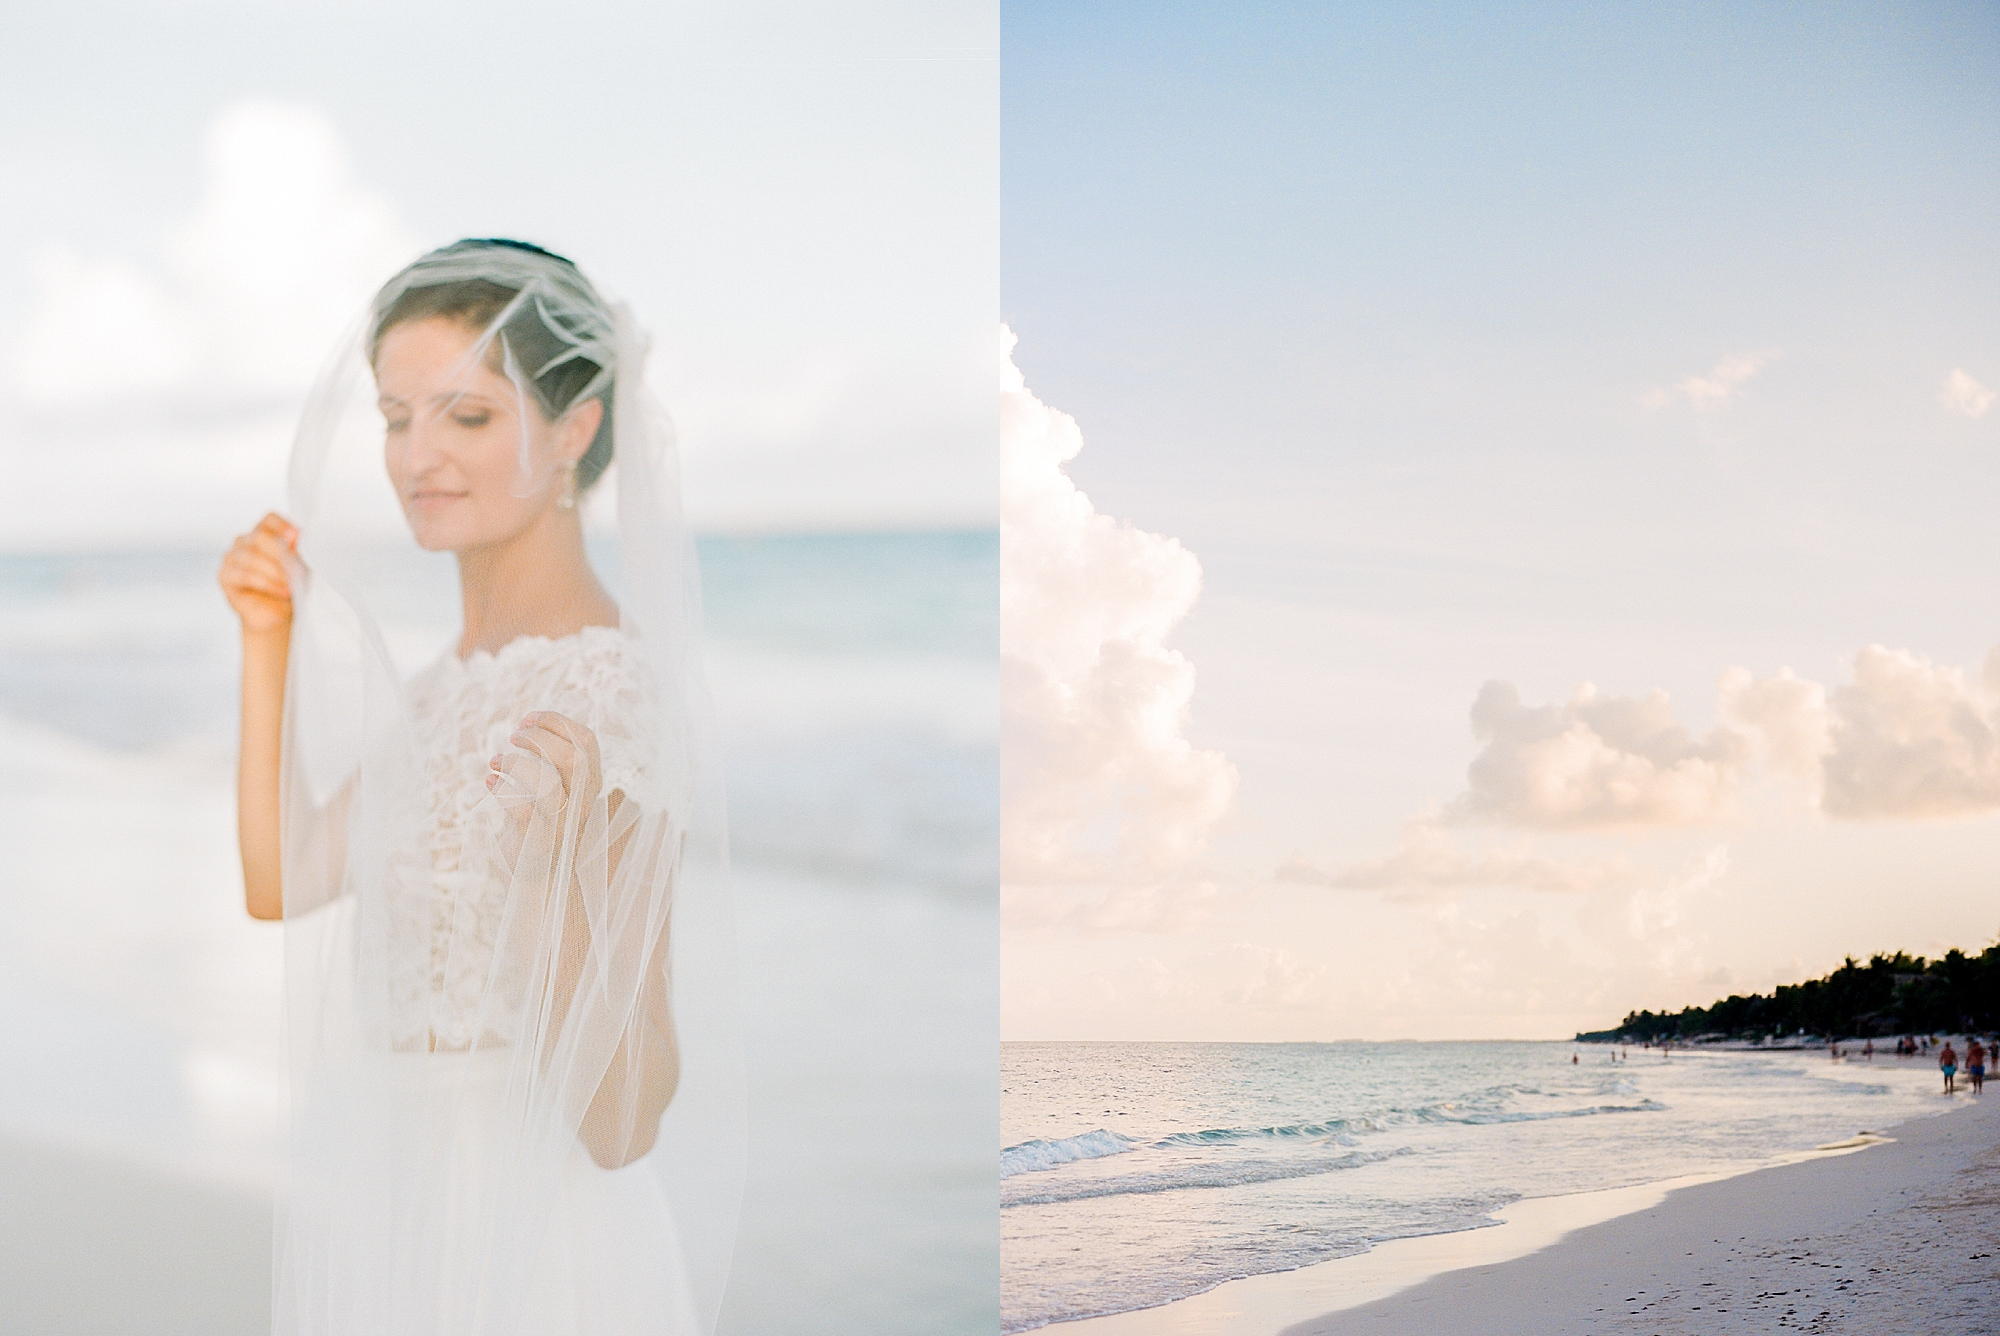 Stylish and Candid Destination Film Wedding Photography in Tulum Mexico by Magdalena Studios 0025.